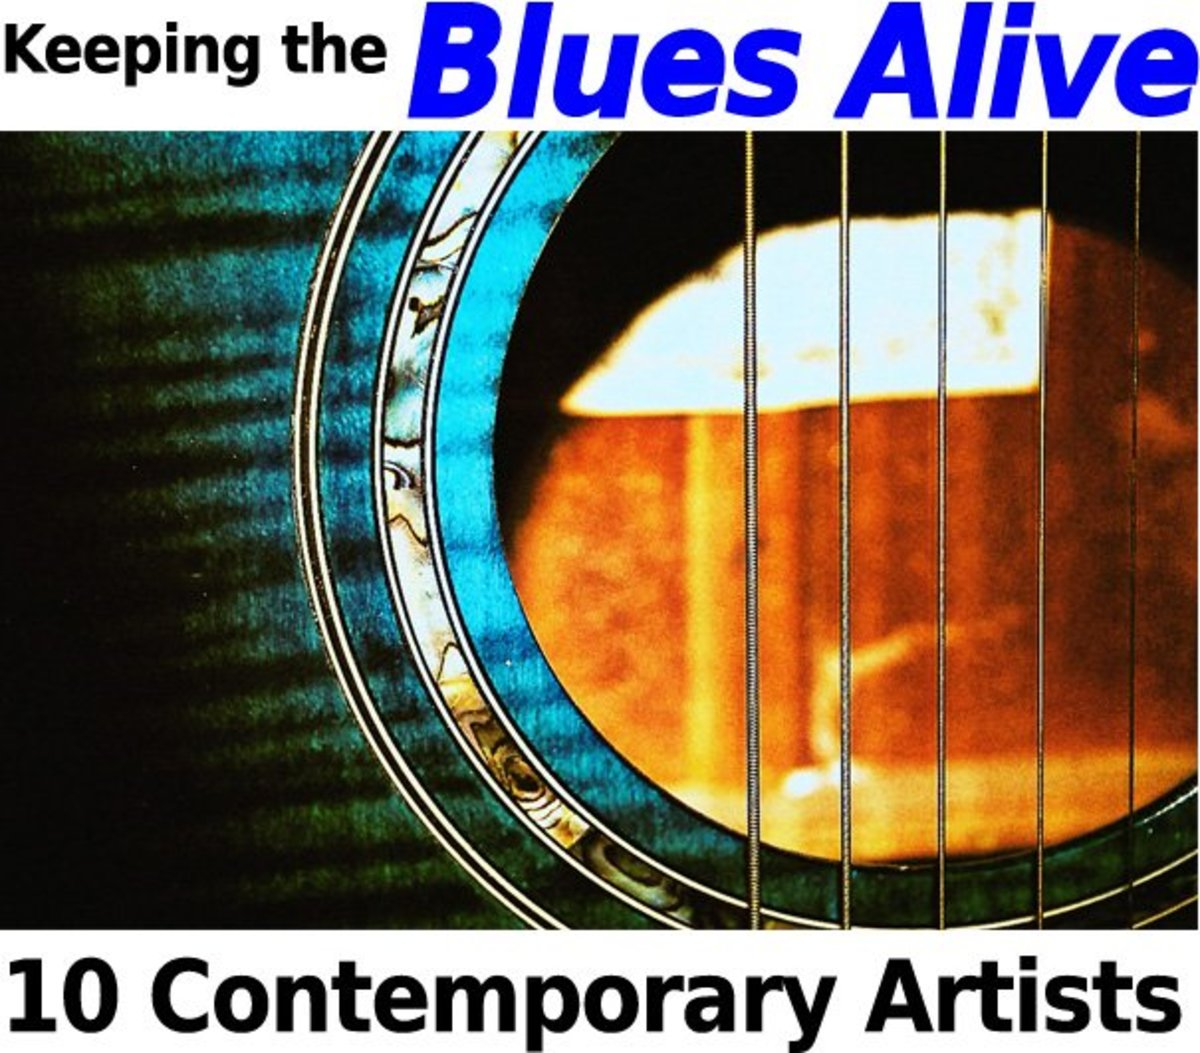 10-great-blues-artists-you-may-not-know